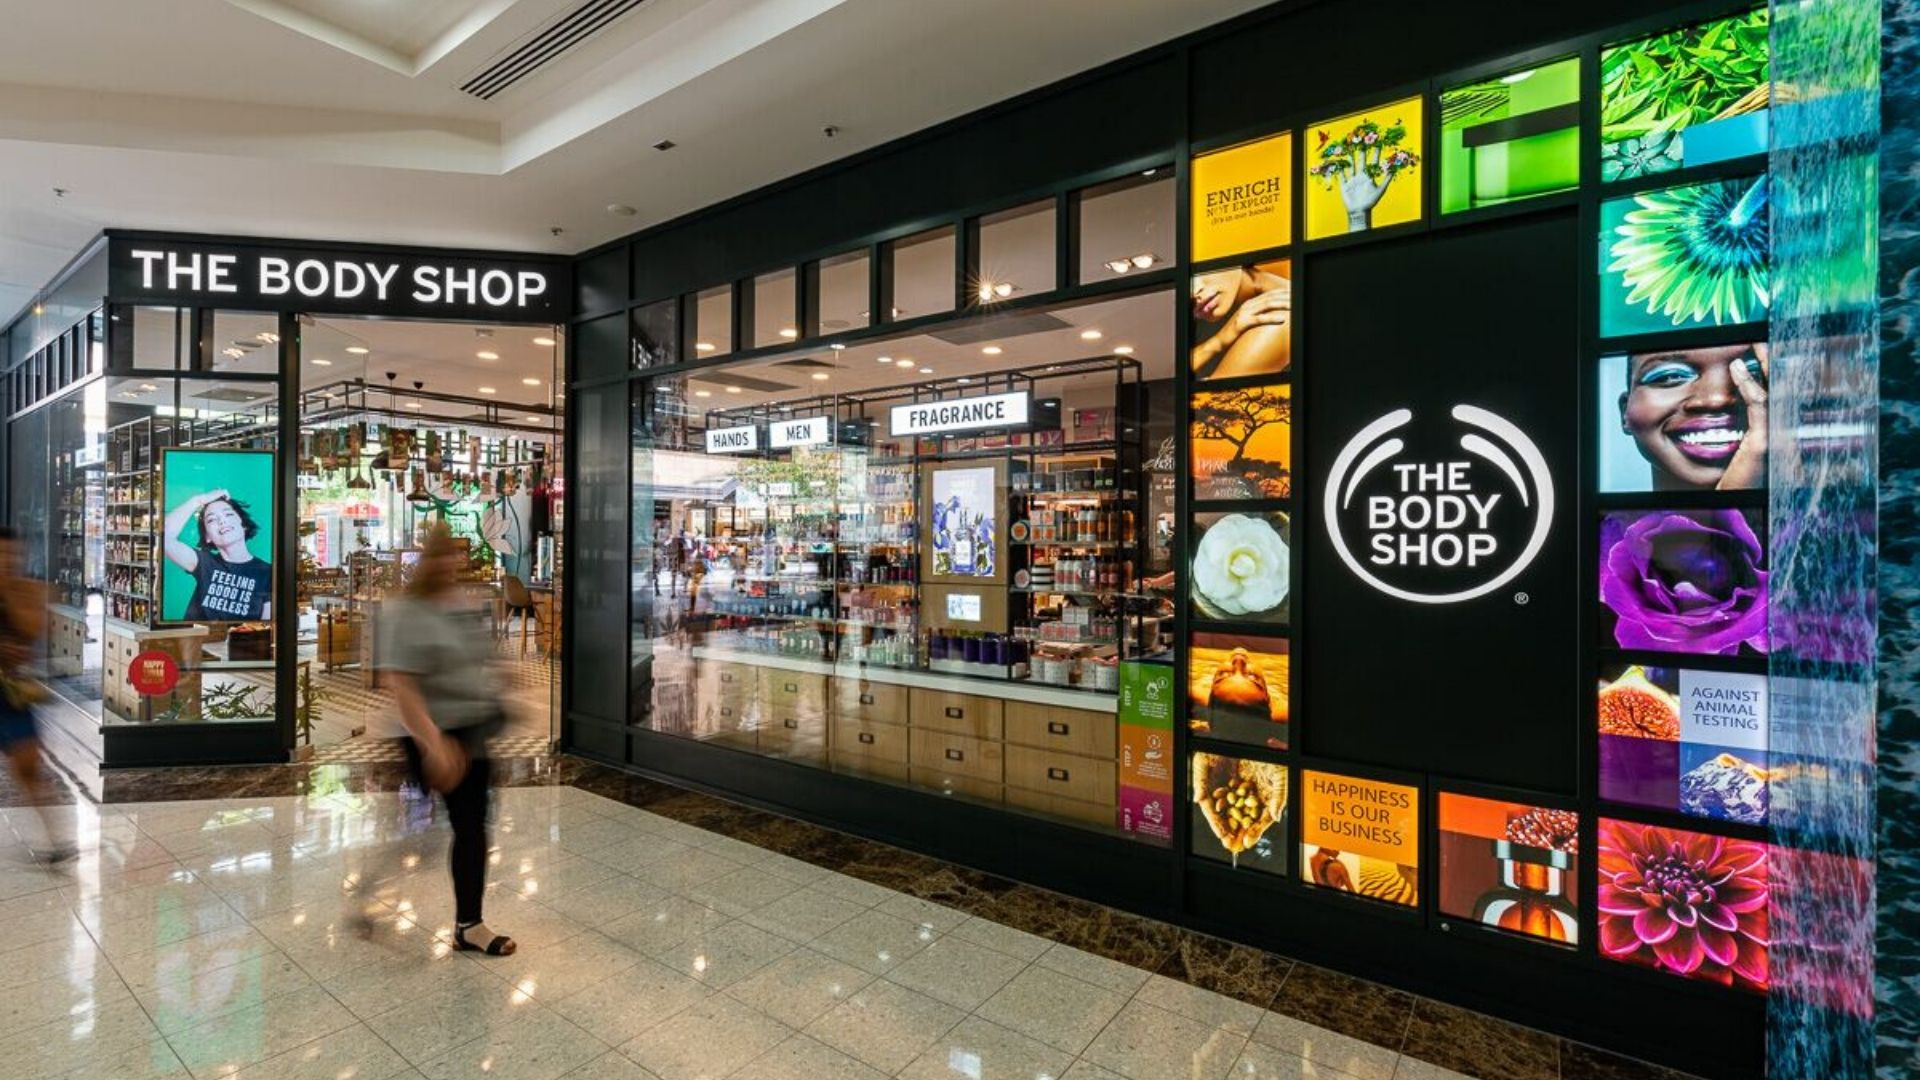 Adelaide Central Plaza - The Body Shop